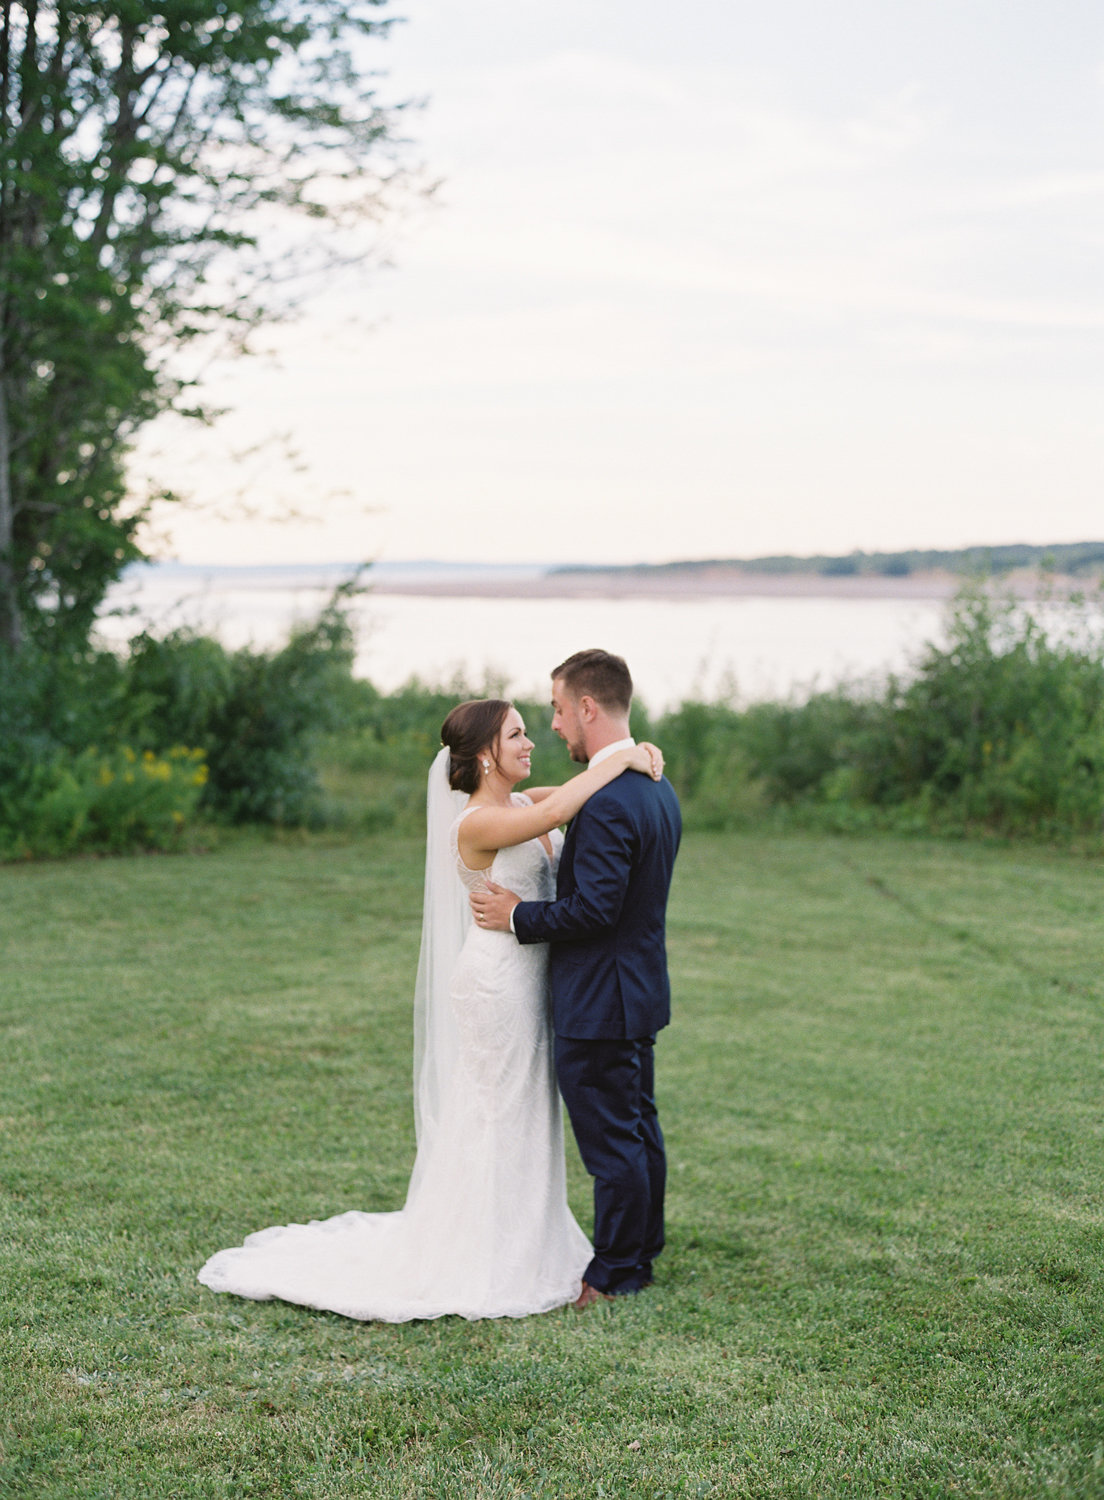 Jacqueline Anne Photography - Nova Scotia Backyard Wedding-88